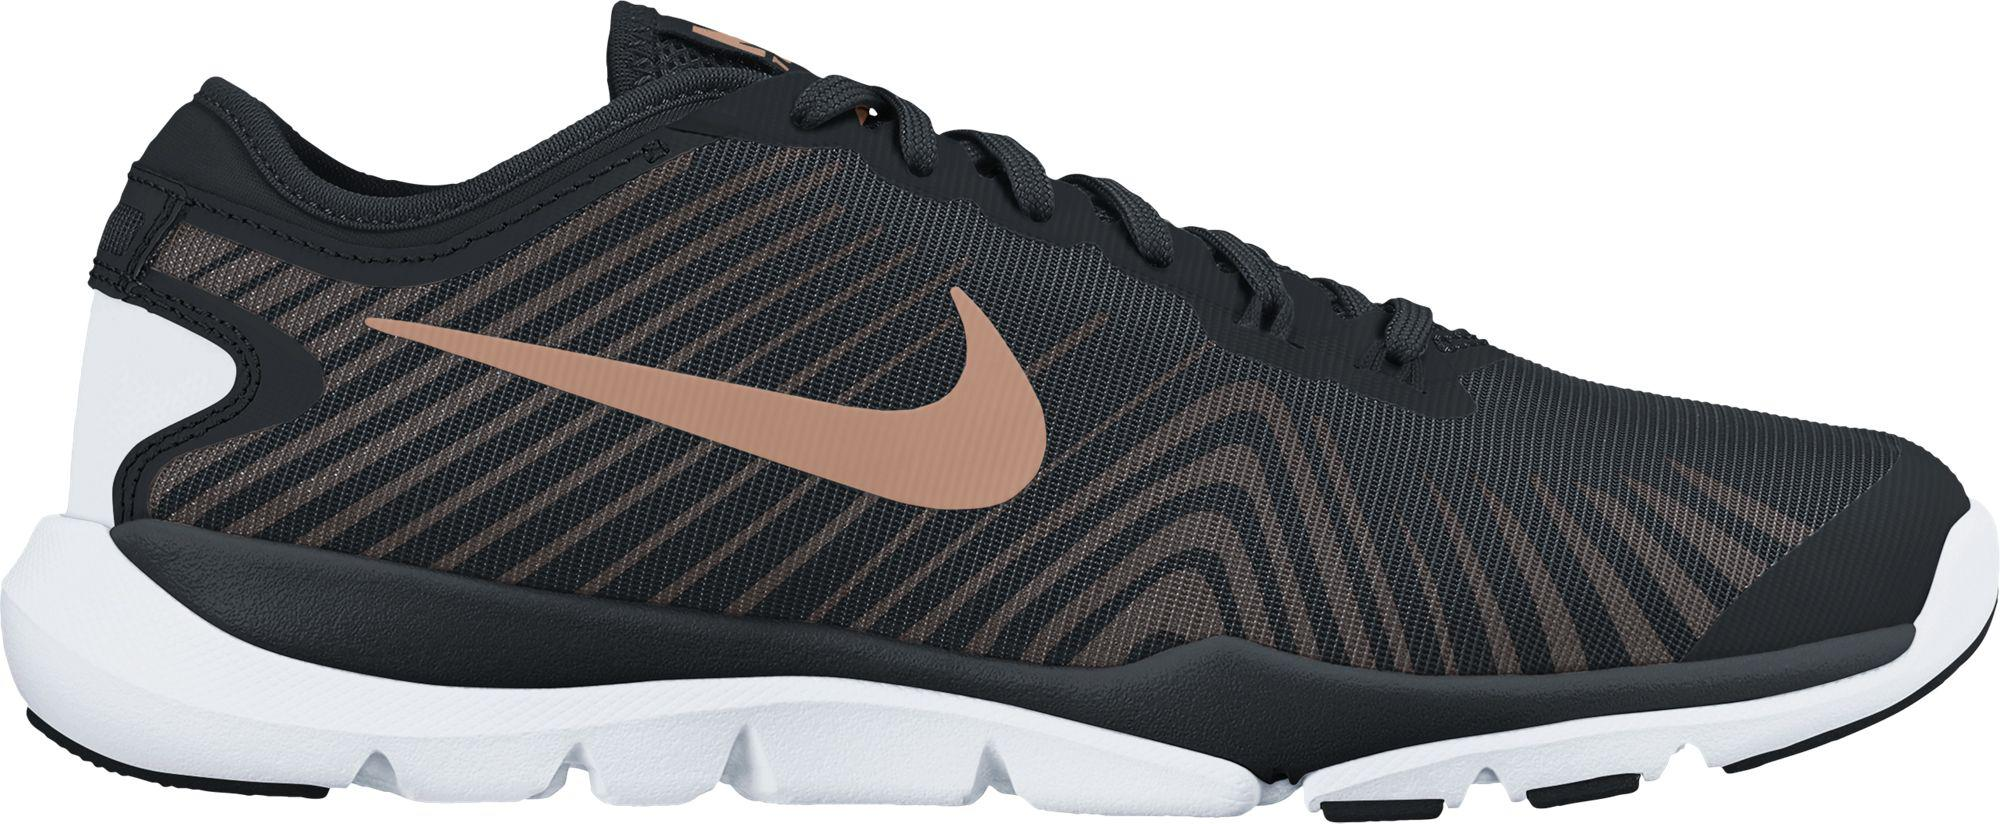 huge discount e6f9d 9ded0 Lyst - Nike Flex Supreme Tr 4 Training Shoes in Black for Men